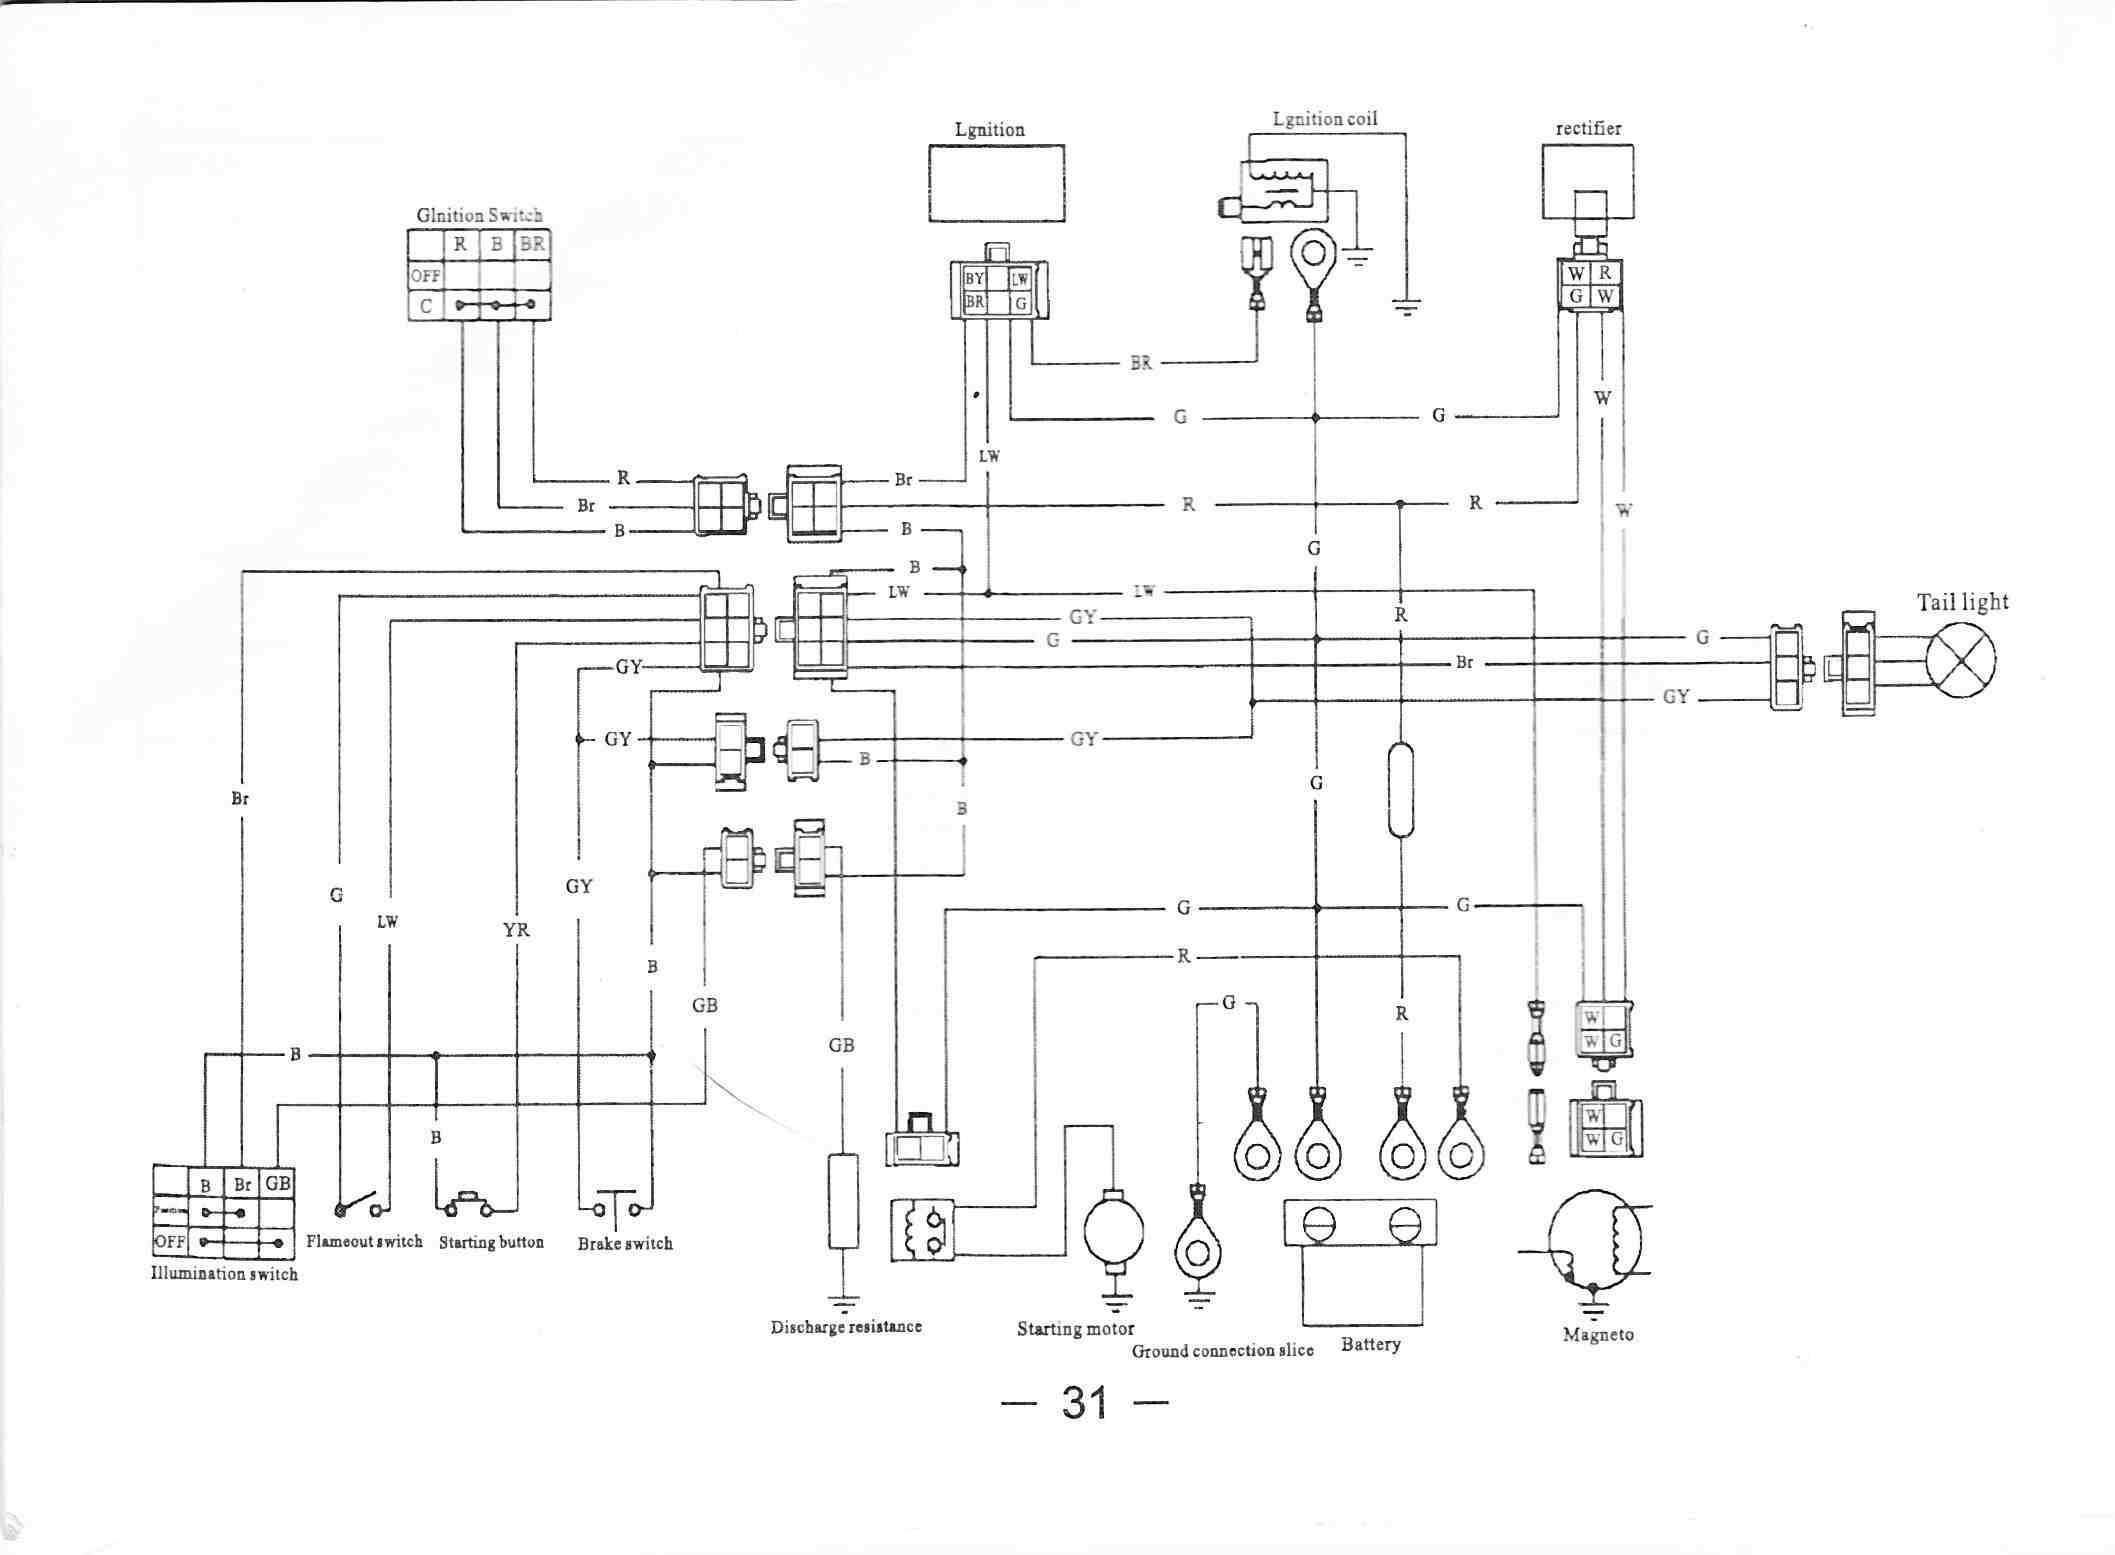 atv 4 wheeler wiring diagram wiring diagram centrehonda 4 wheeler wiring wiring diagram home110 honda 4 wheeler wiring diagram wiring diagram site 110